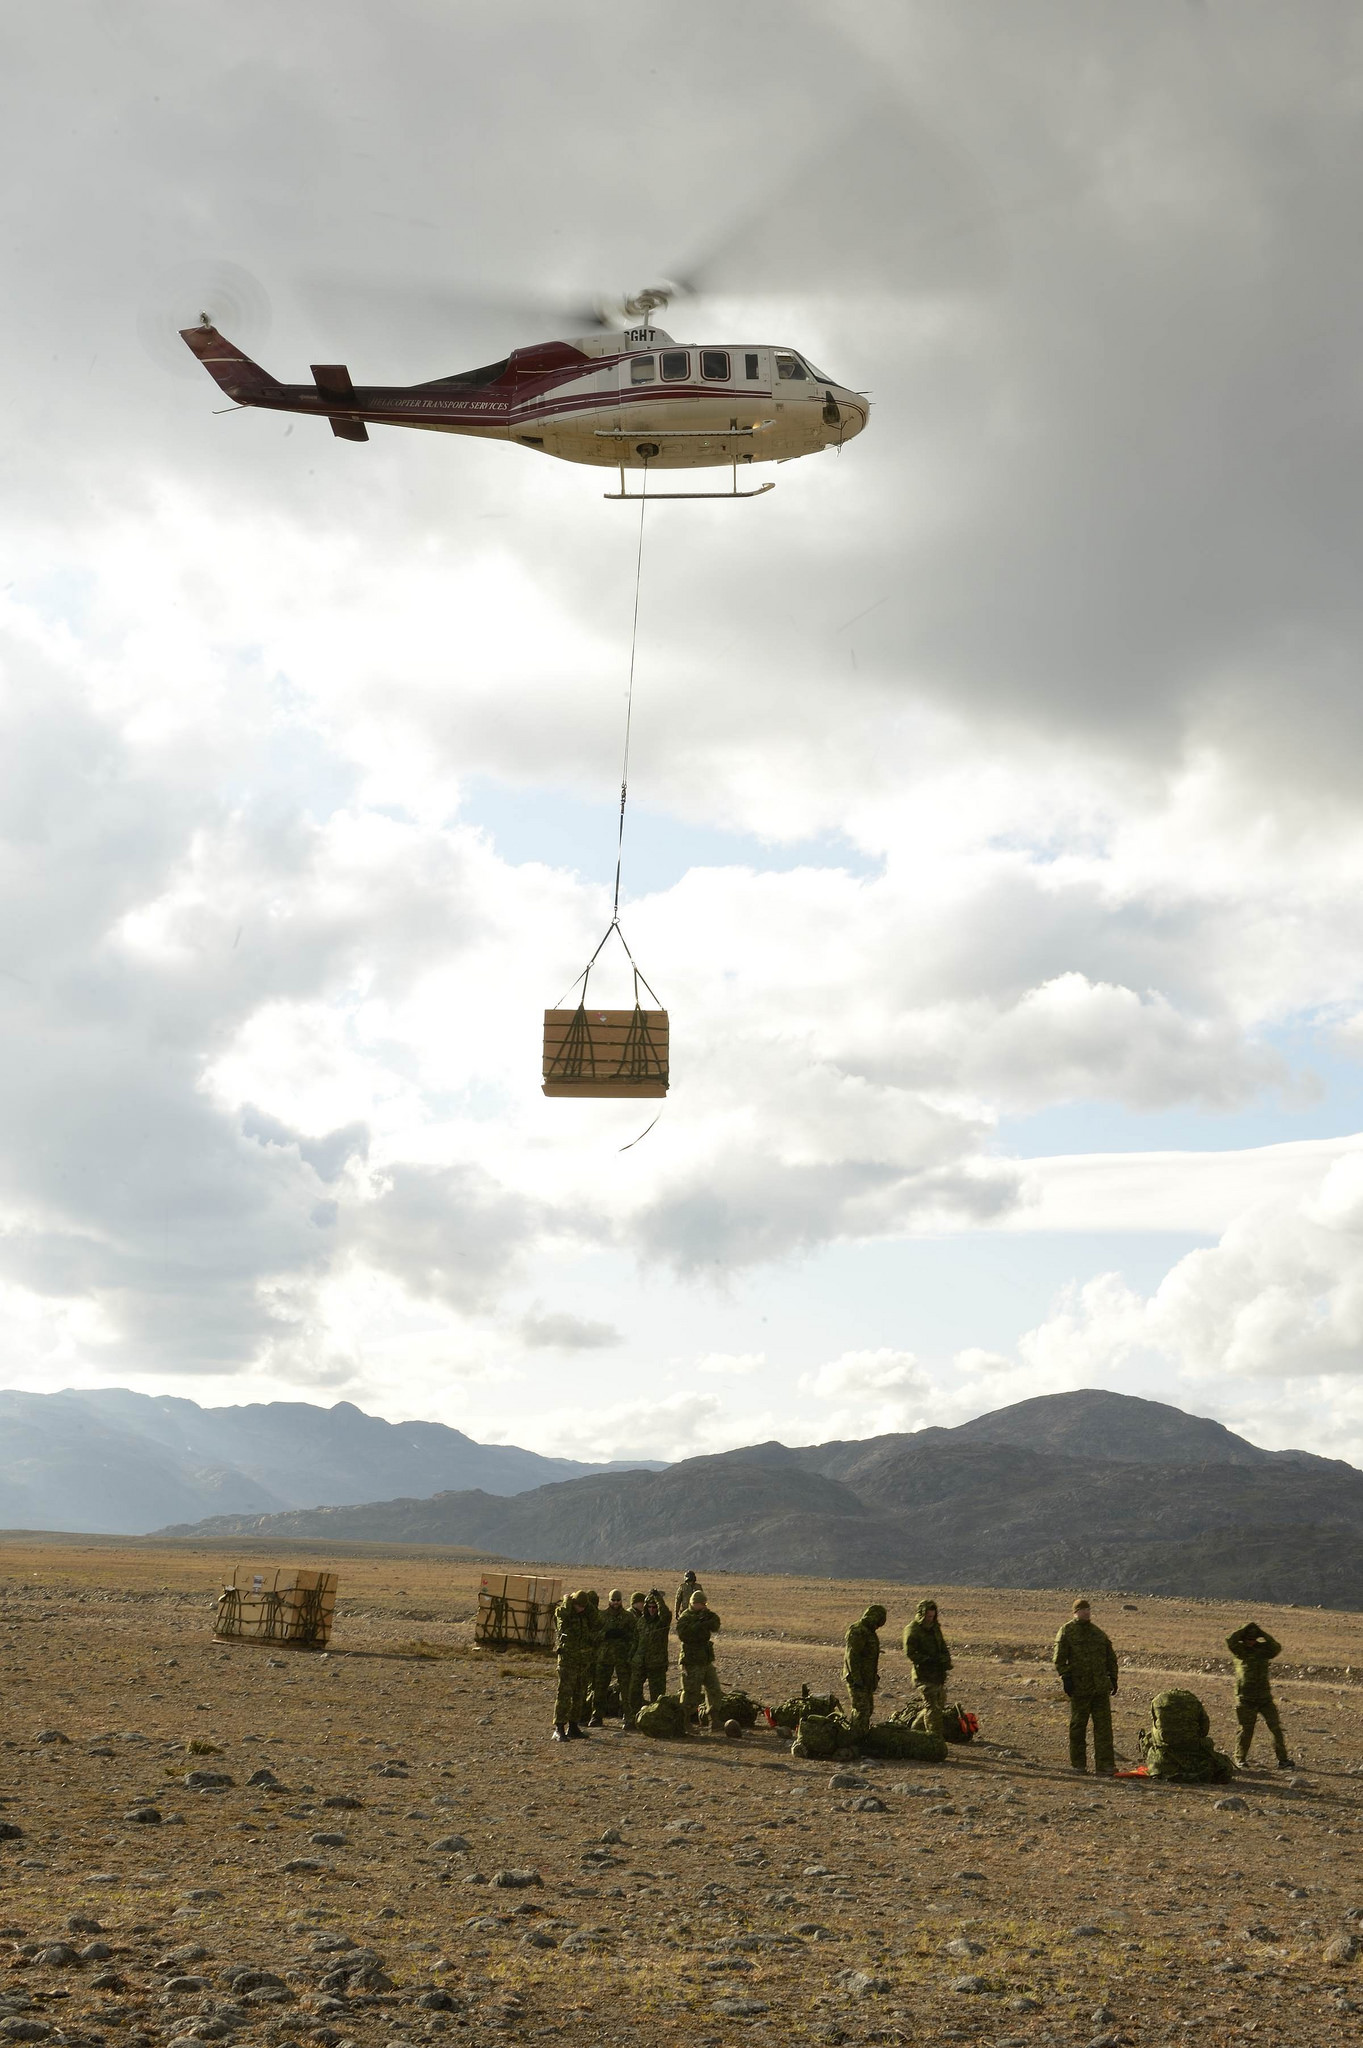 A crate attached to a helicopter